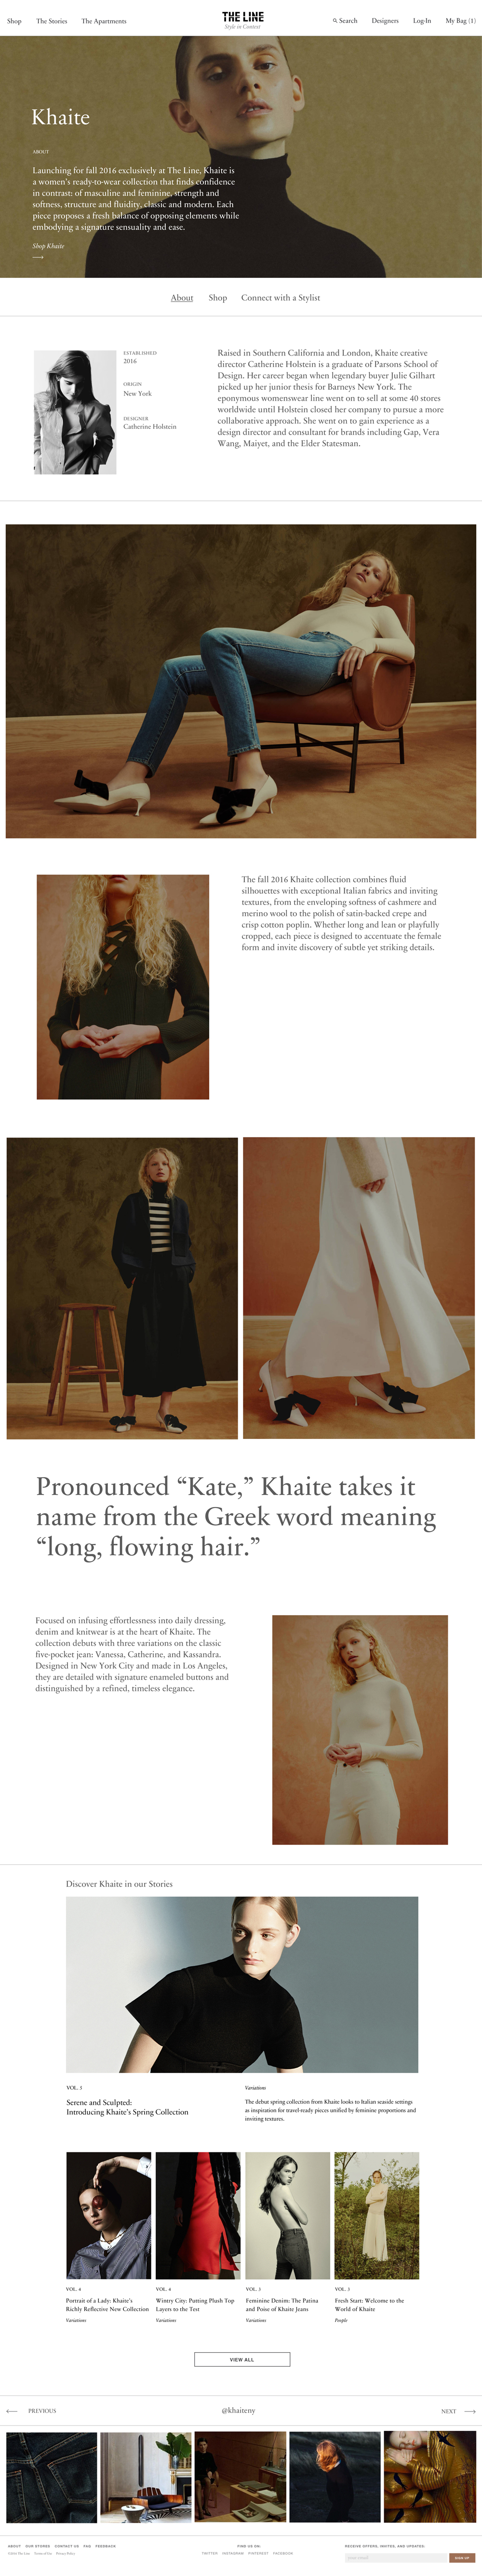 Brand-pages-Final---KHAITE-2